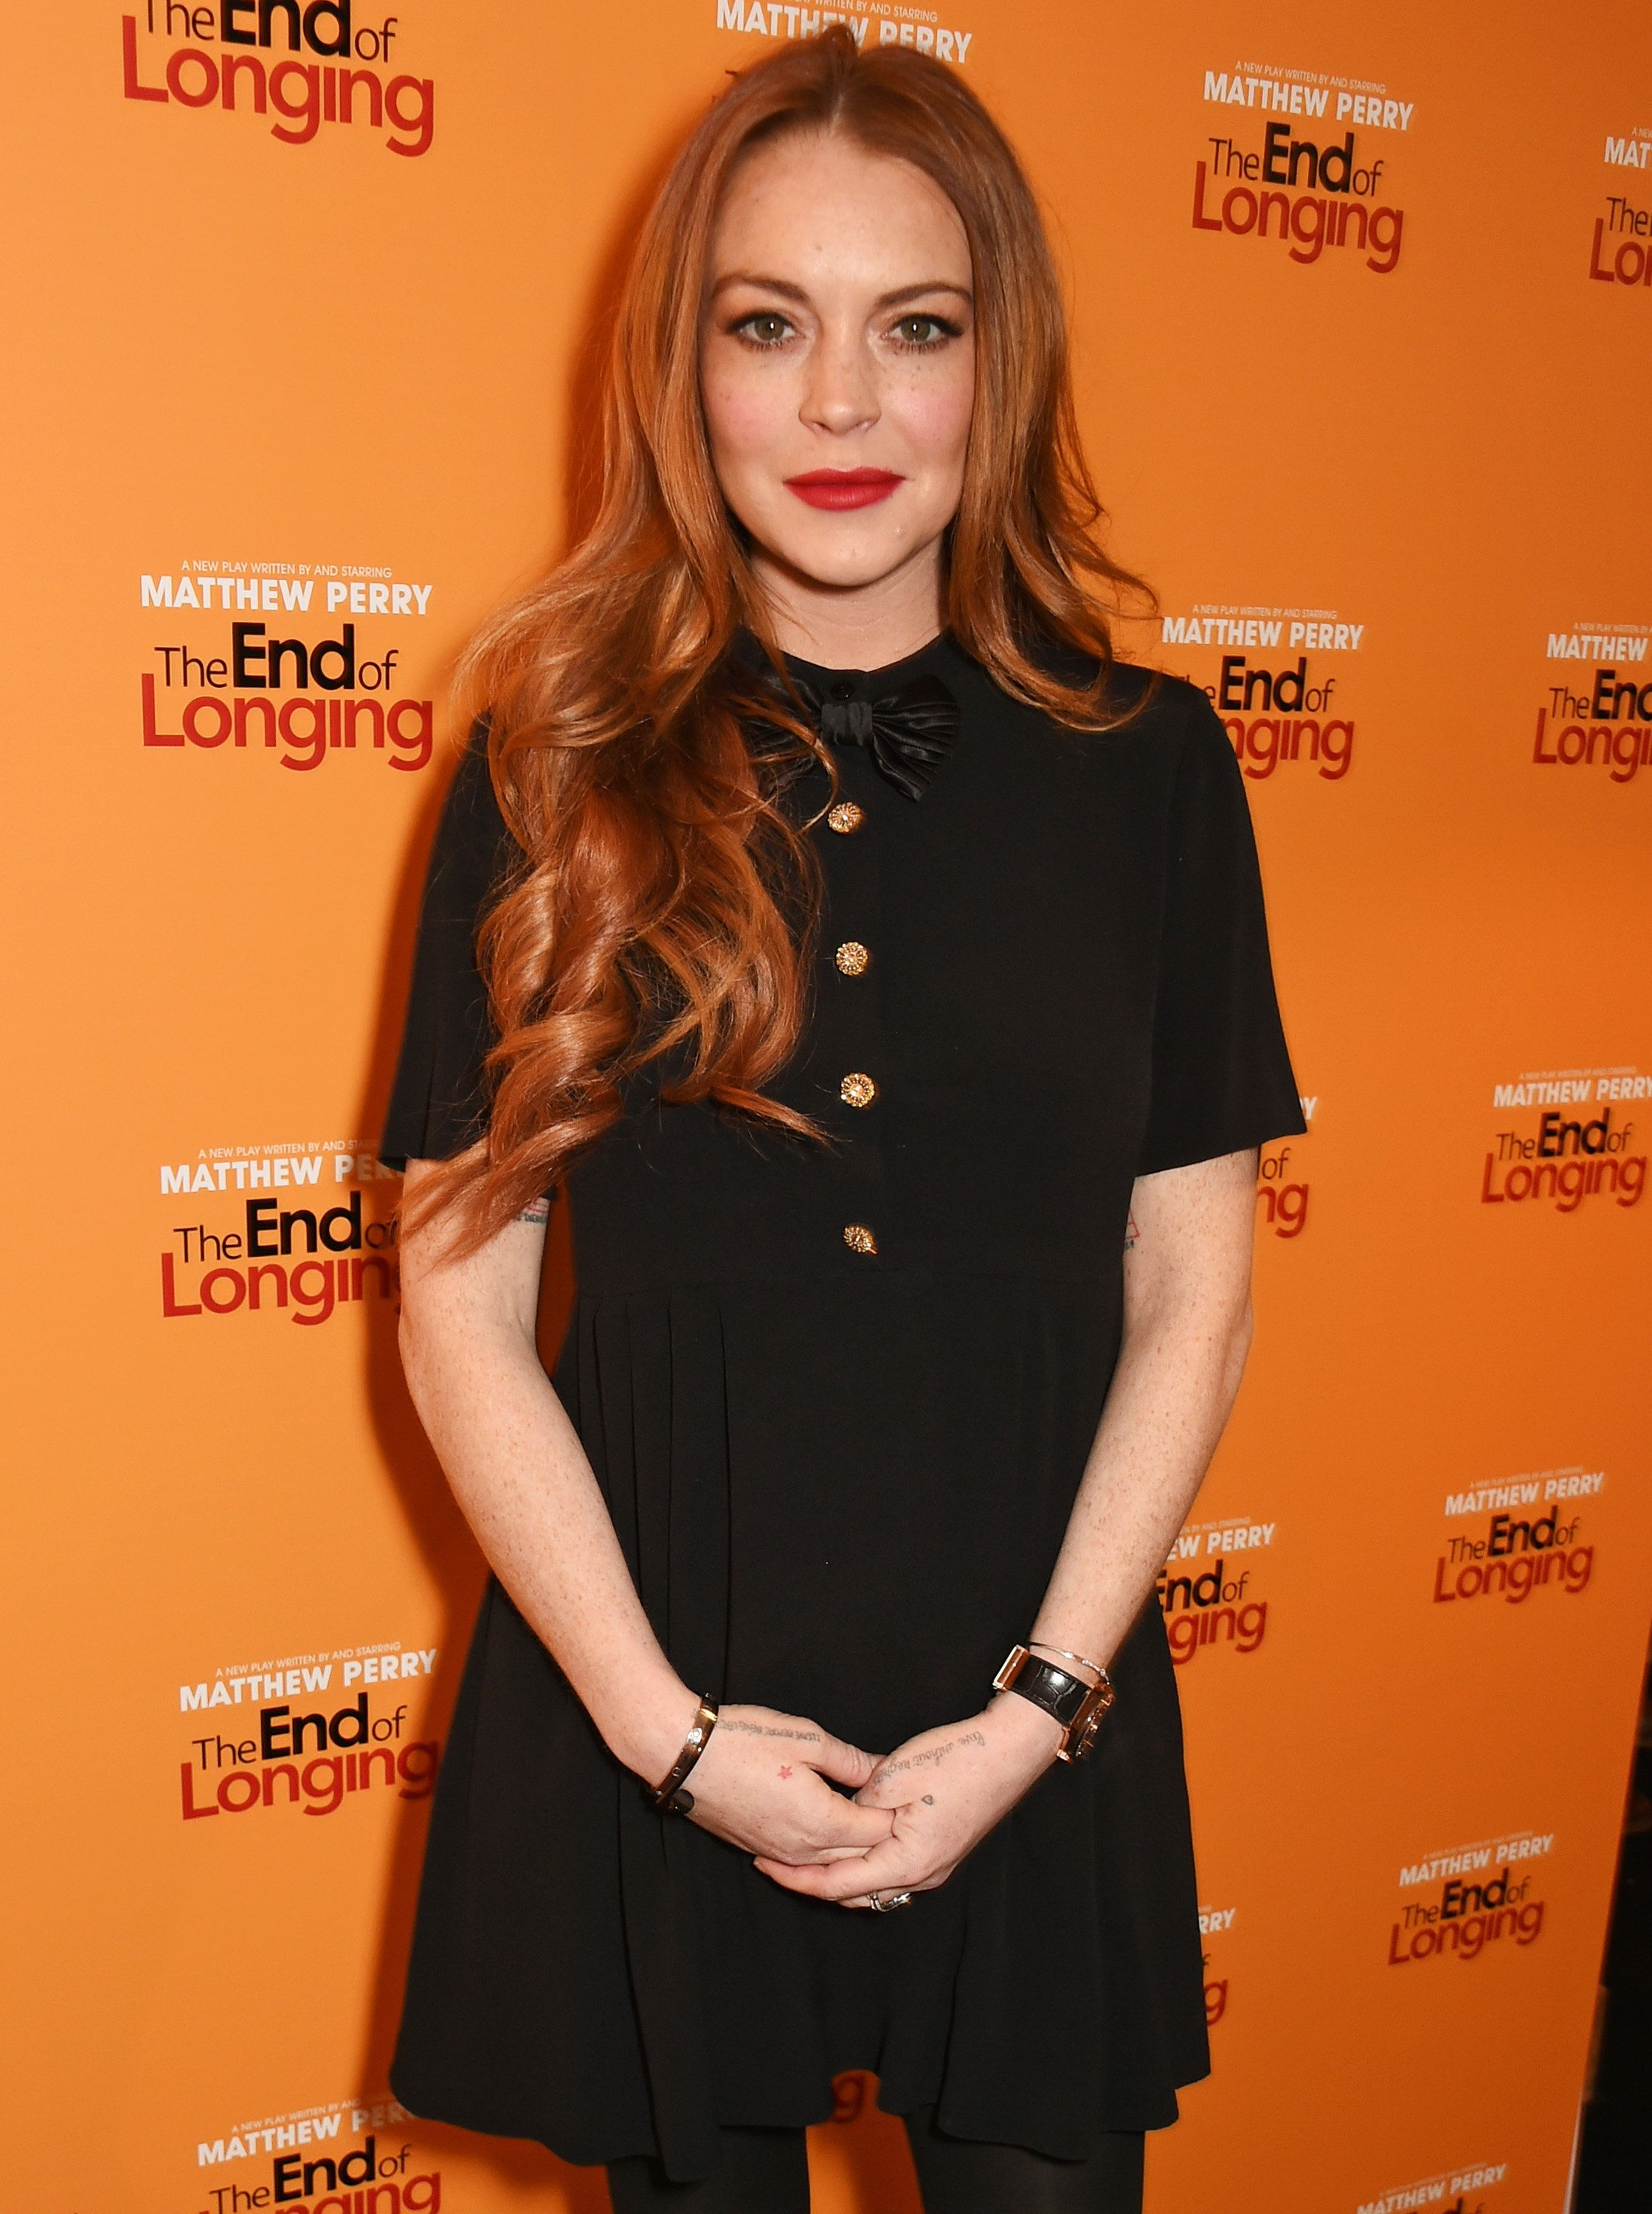 Lindsay Lohan claimed she turned down Harry